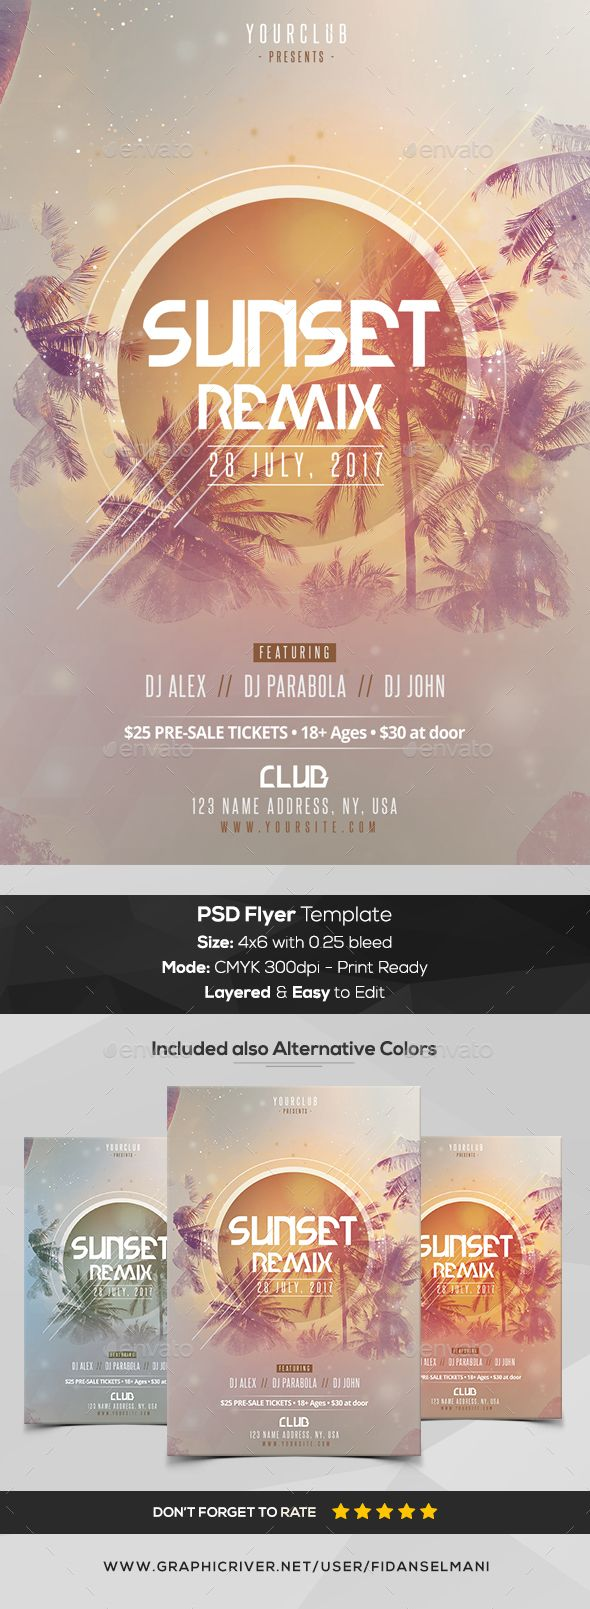 Sunset Remix - PSD Flyer Template - #Flyers Print #Templates Download here: https://graphicriver.net/item/sunset-remix-psd-flyer-template/20385551?ref=alena994